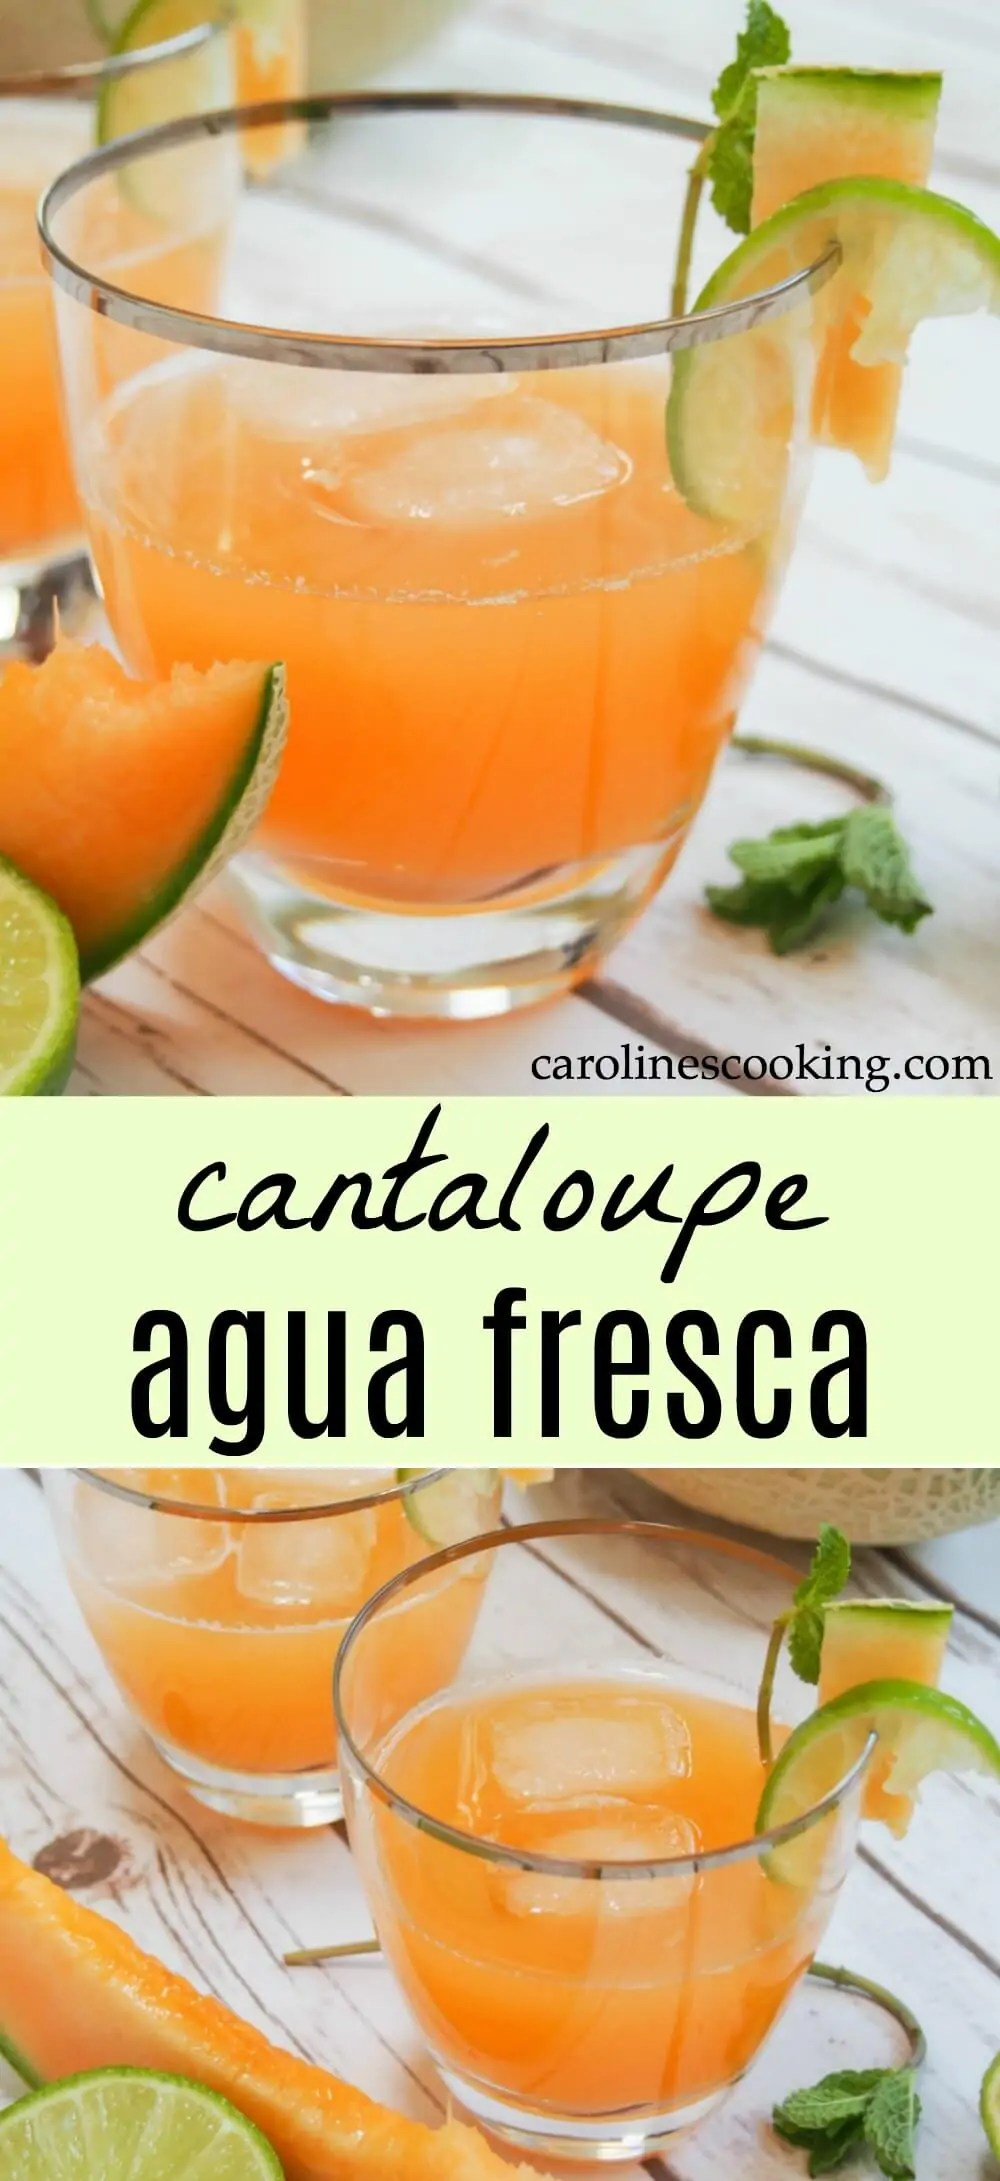 Cantaloupe agua fresca is easy to make and incredibly refreshing. Light and gently fruity, it's a family-friendly drink perfect for a warm day. All you need is cantaloupe, water and lime. It'll quench your thirst on a warm day and is a great, light option alongside a meal. #cantaloupe #drink #mexican #nonalcoholic